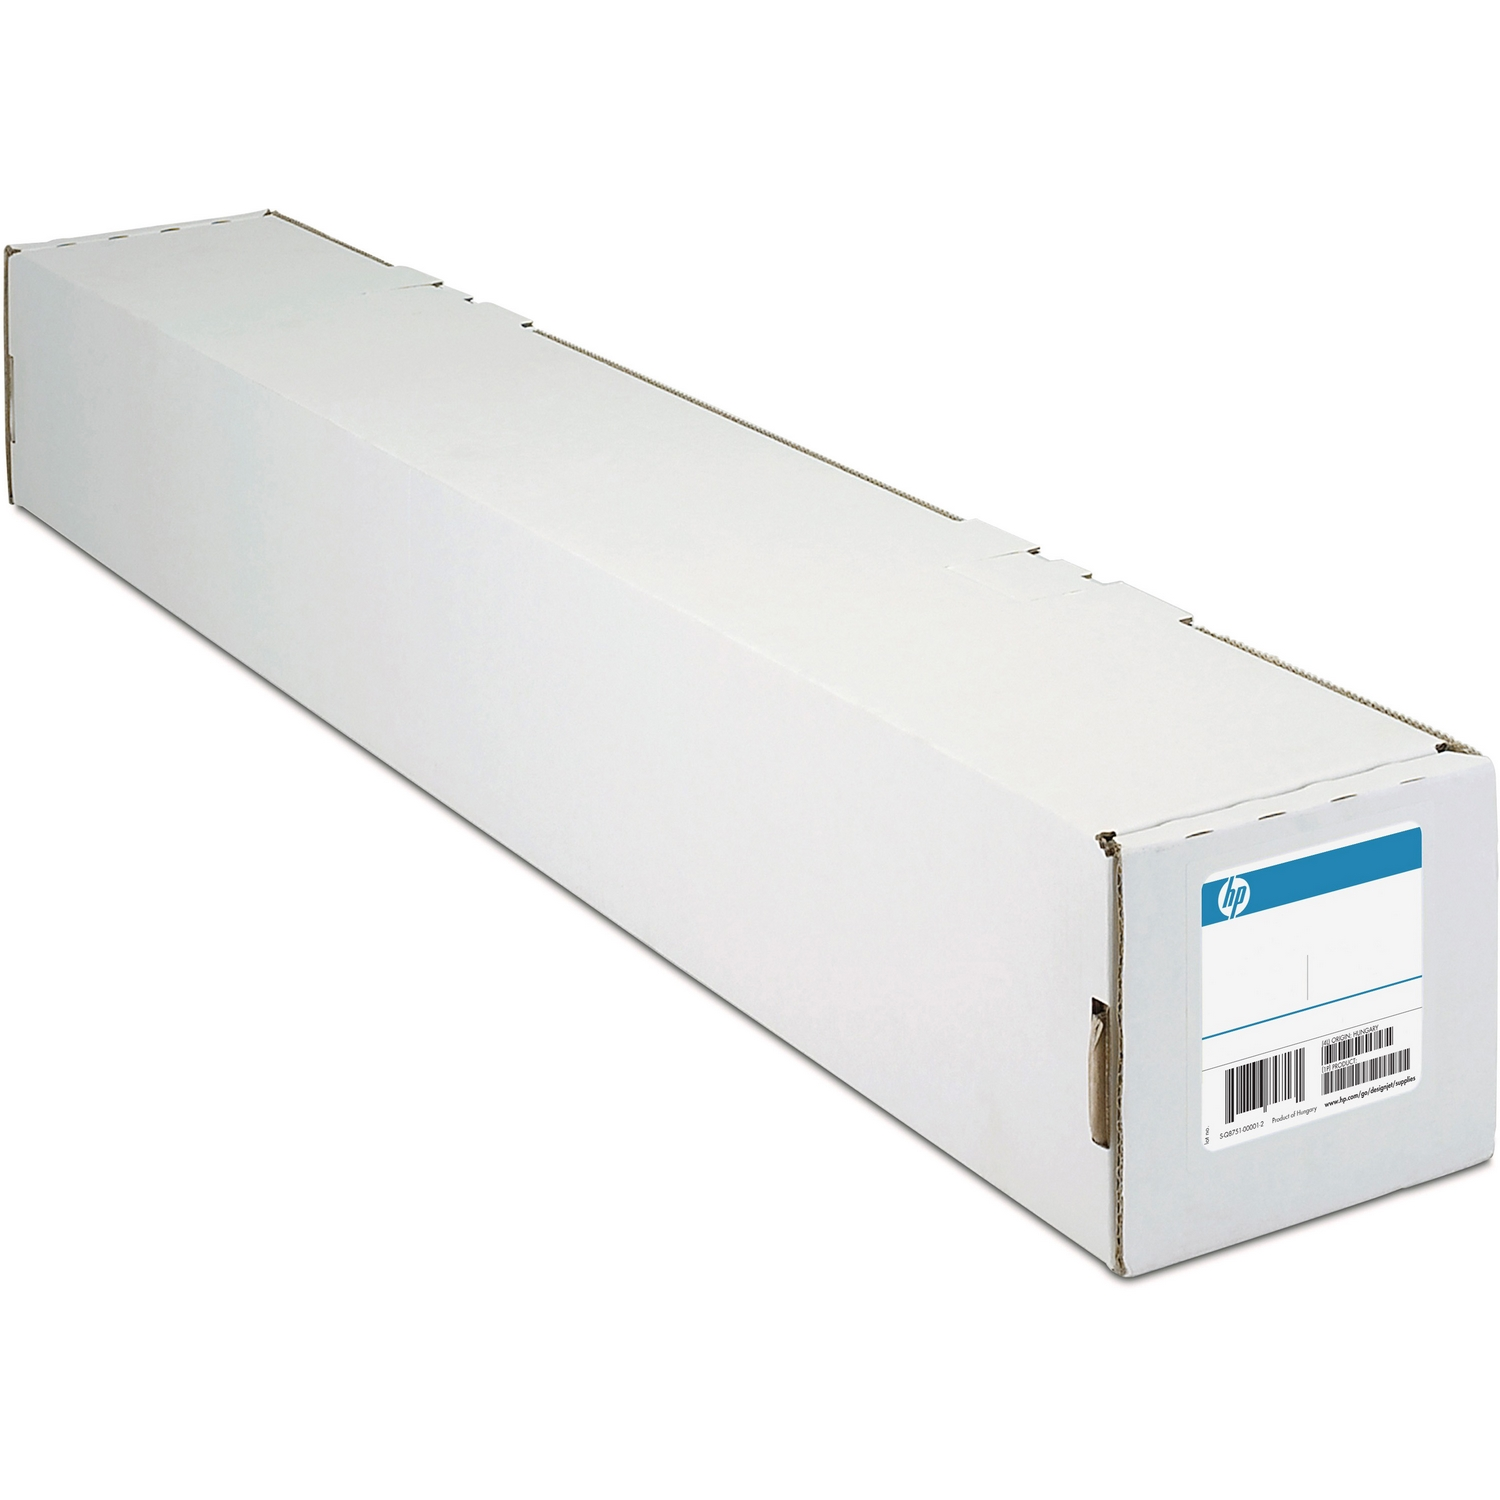 Original HP C6030C 130gsm 36in x 101ft Paper Roll (C6030C)